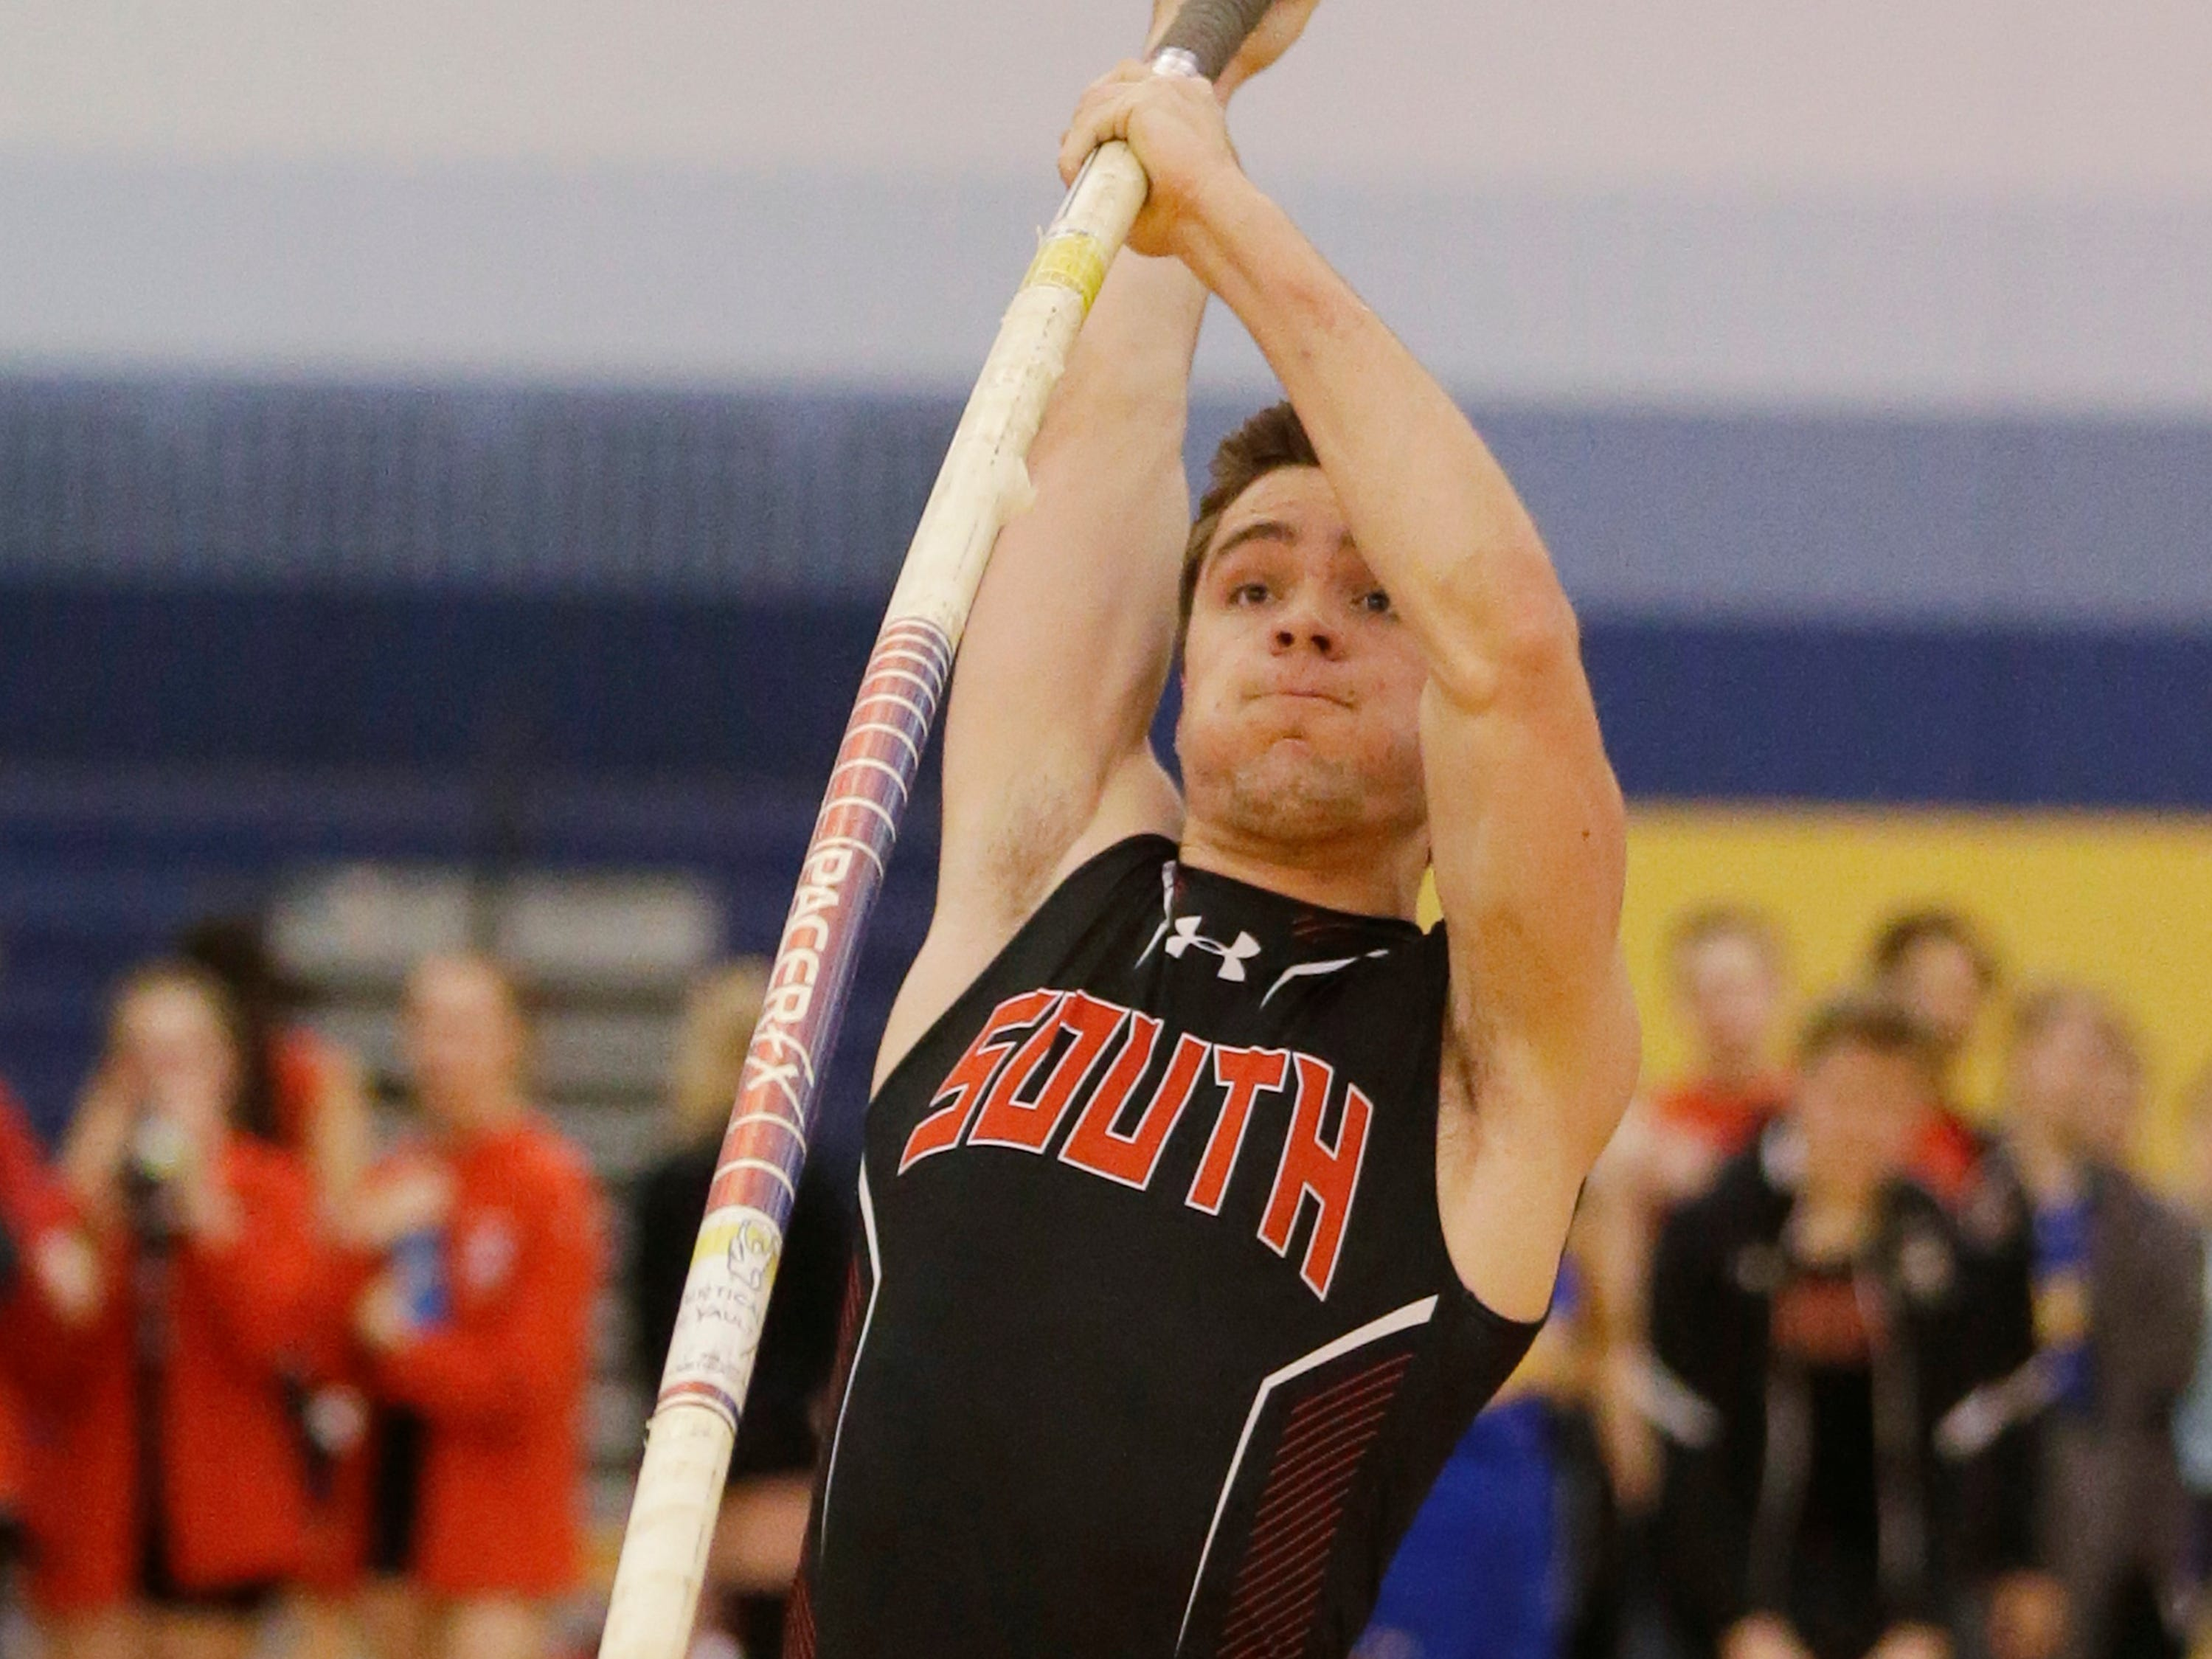 Sheboygan South's Ross Kovacic plants the pole vault during an attempt at the Sheboygan North Invite track meet, Tuesday, April 2, 2019, in Sheboygan, Wis.